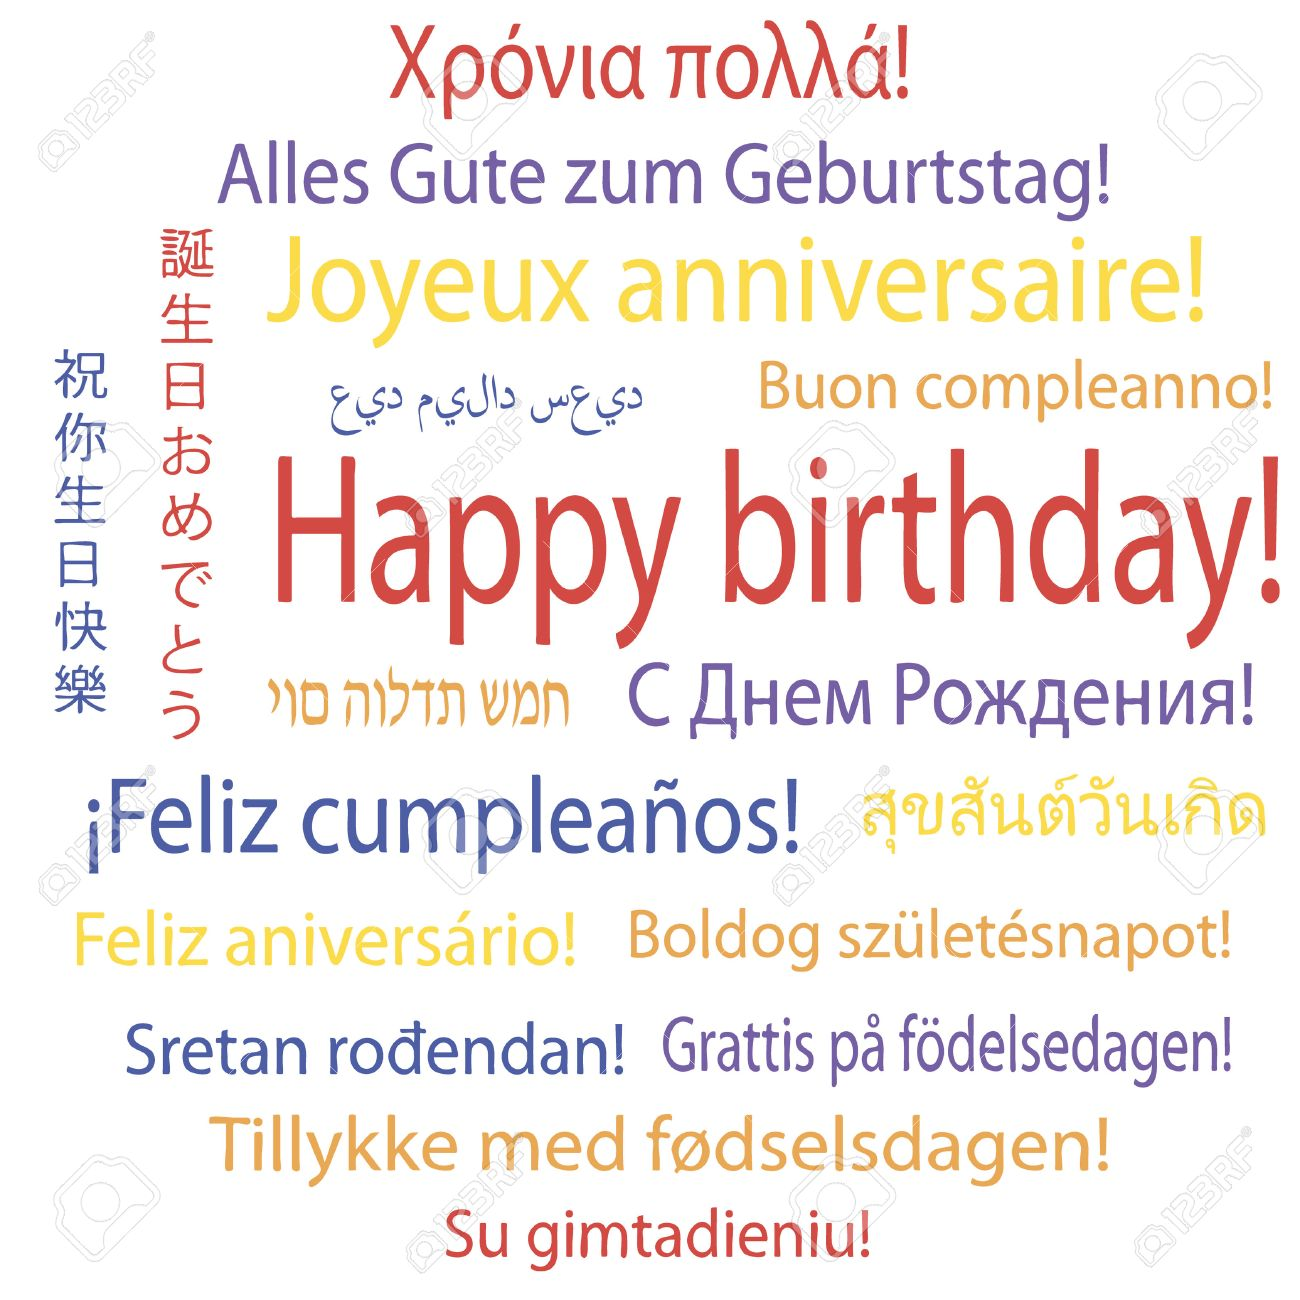 happy birthday in different languages ; 27675207-happy-birthday-in-many-languages